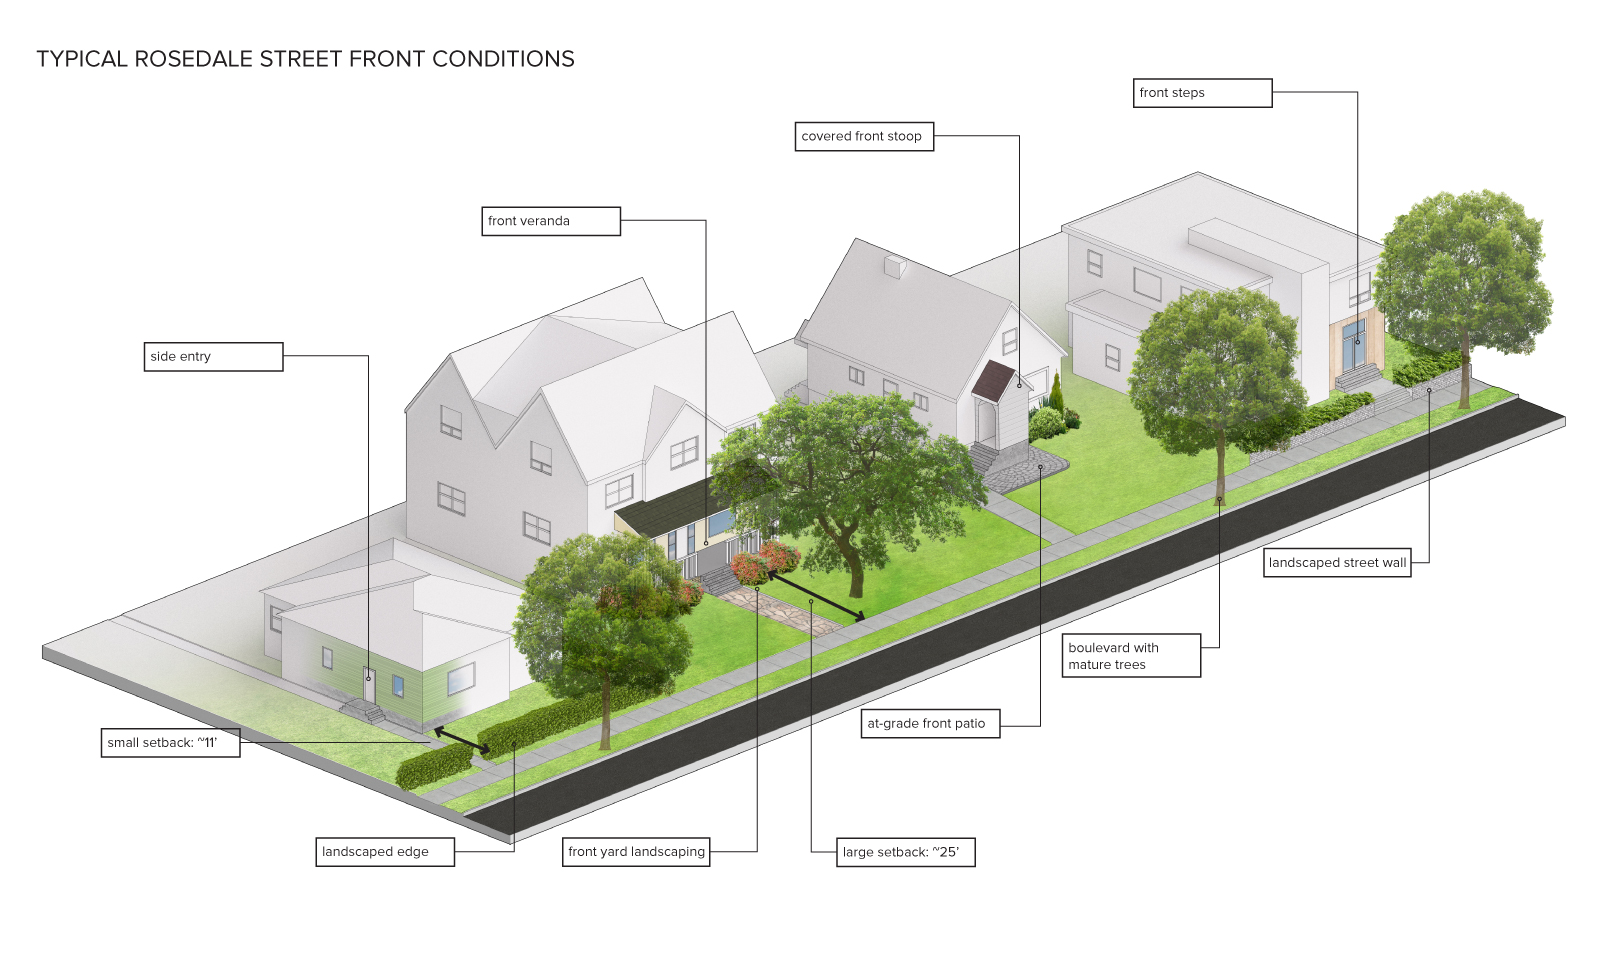 Images of different street front (edge elements) including verandas, landscaping, front steps, trees, patios and setbacks.